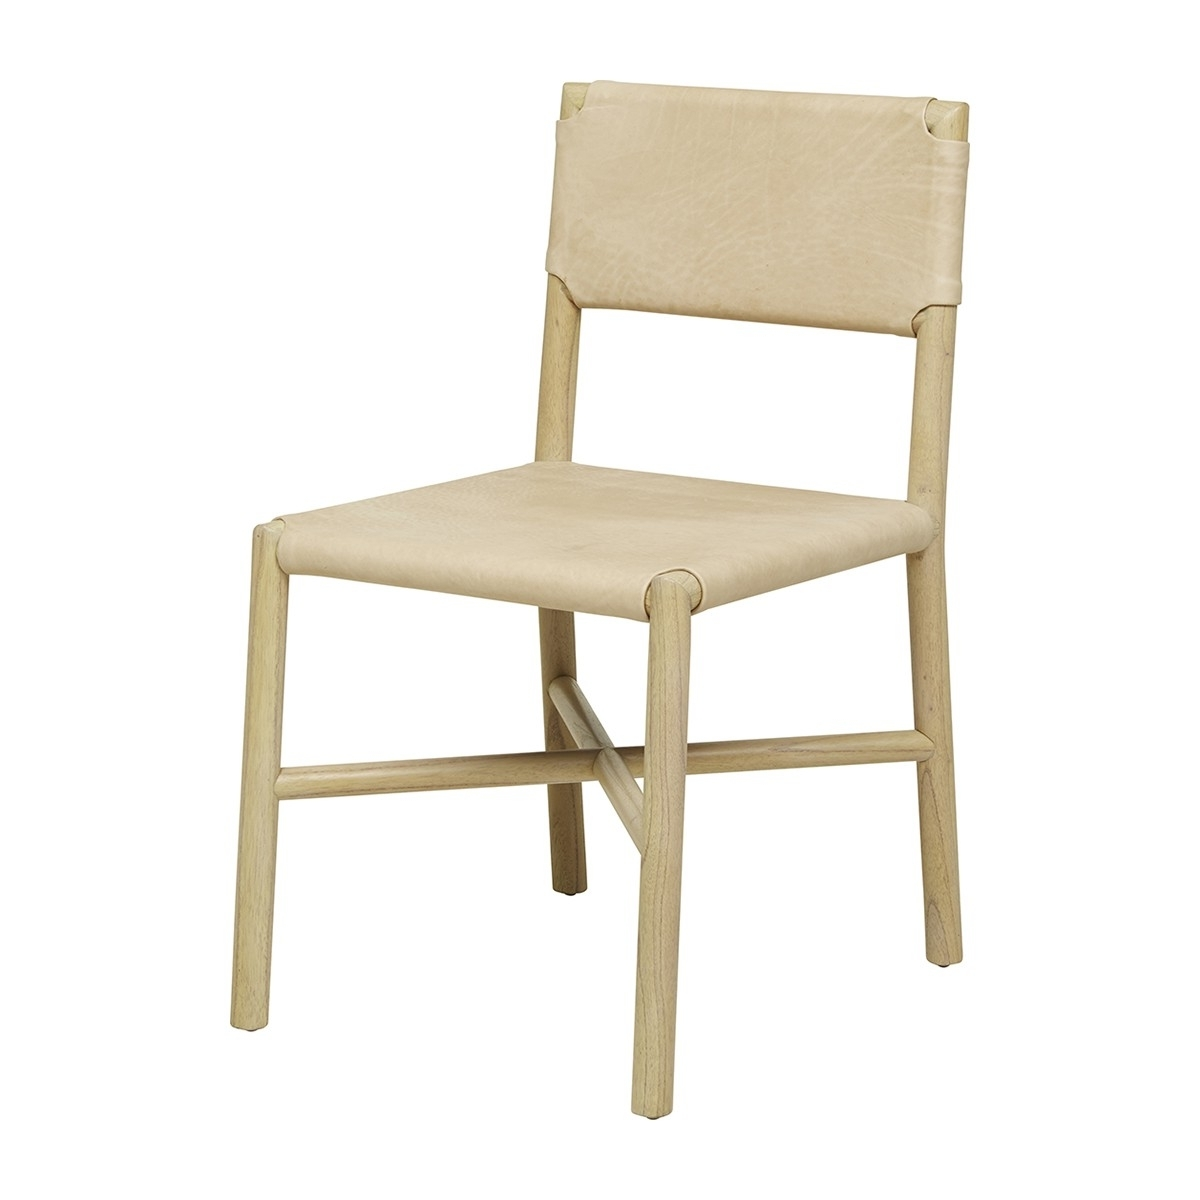 Newest Globe West – Seed Flat Leather Dining Chair (Natural) – Modern With Real Leather Dining Chairs (View 14 of 25)